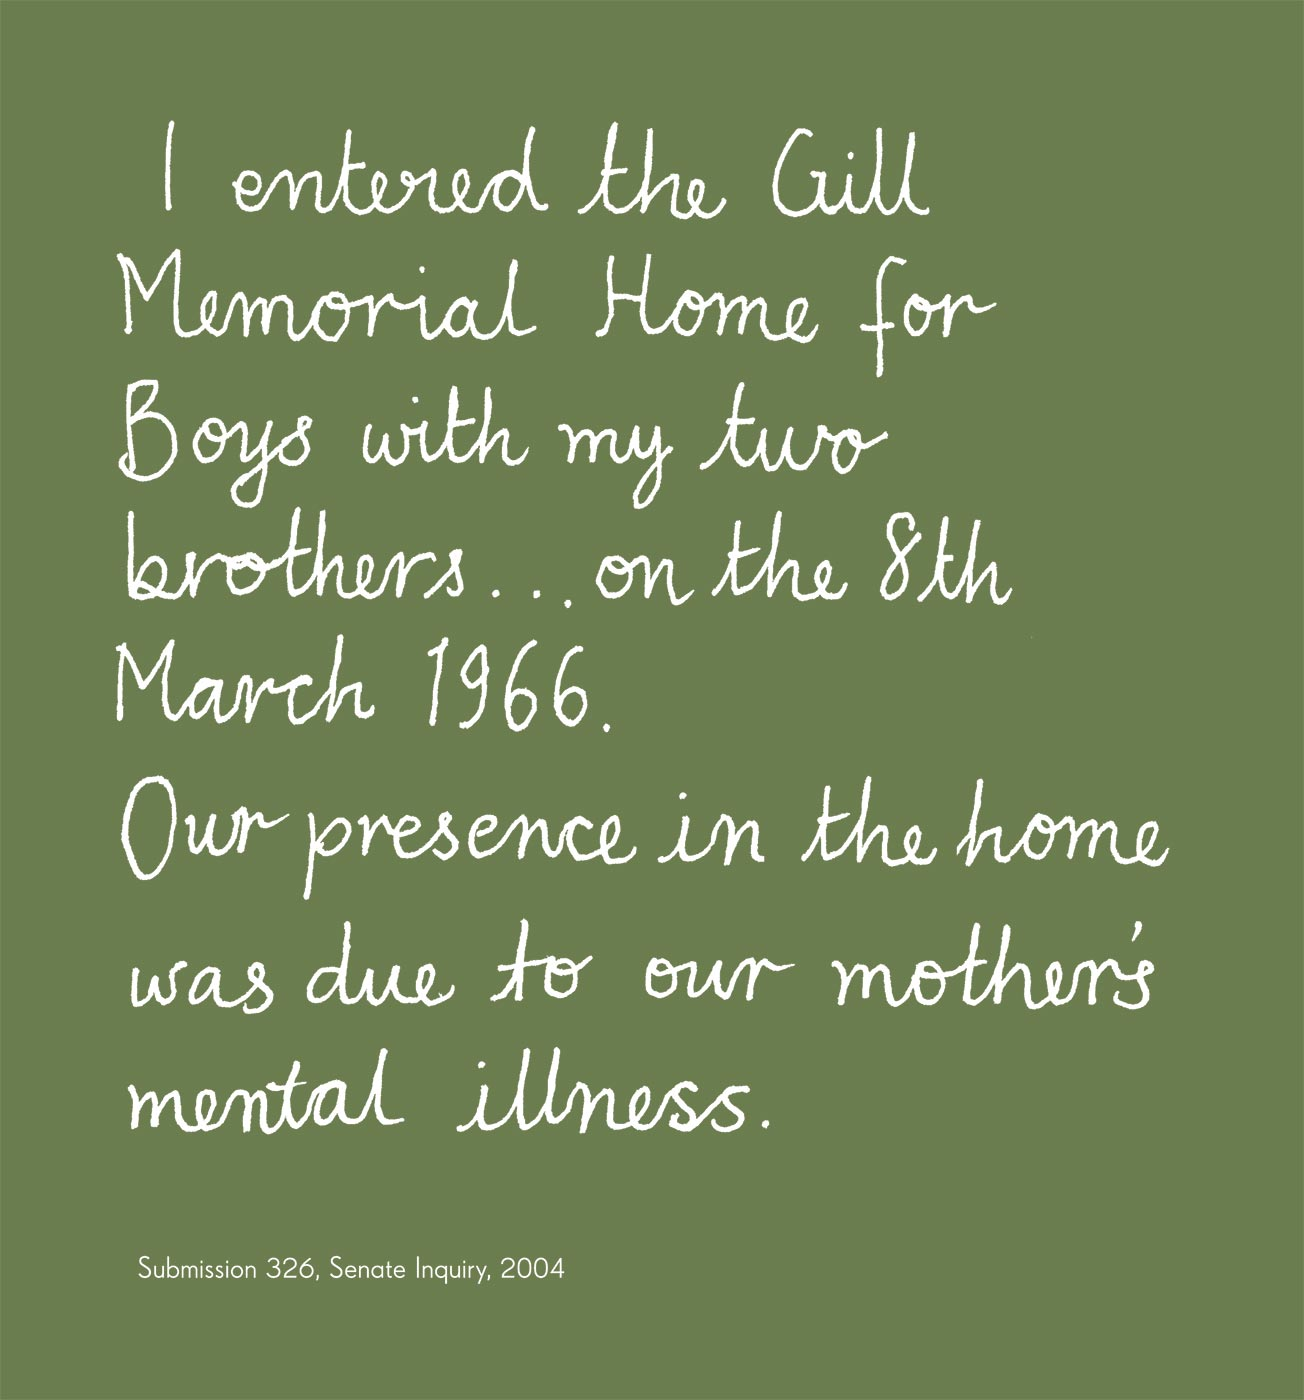 Exhibition graphic panel that reads: 'I entered the Gill Memorial Home for Boys with my two brothers ... on the 8th March 1966. Our presence in the home was due to our mother's mental illness,' attributed to 'Submission 326, Senate Inquiry, 2004'. - click to view larger image